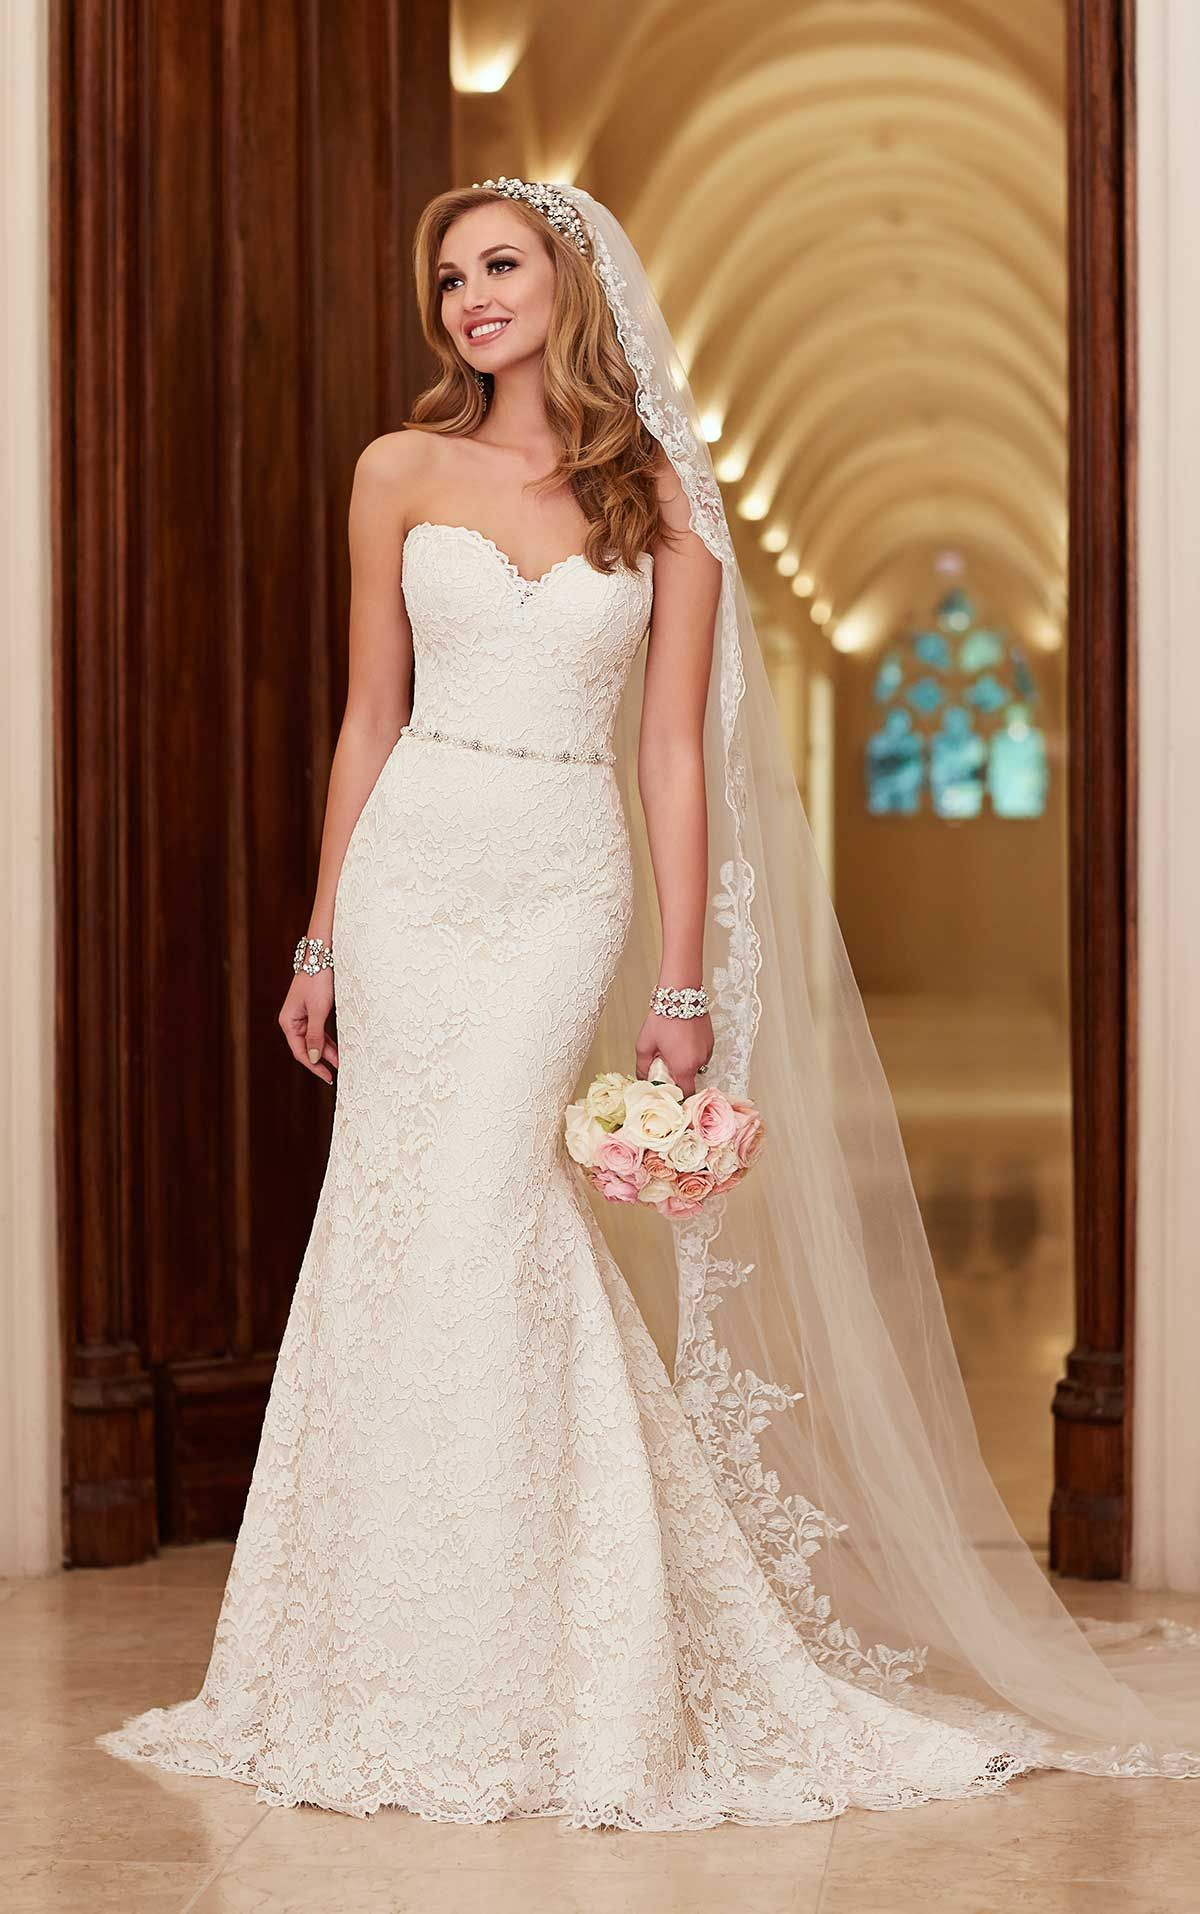 Romantic lace over satin wedding dresses uc i do uc pinterest